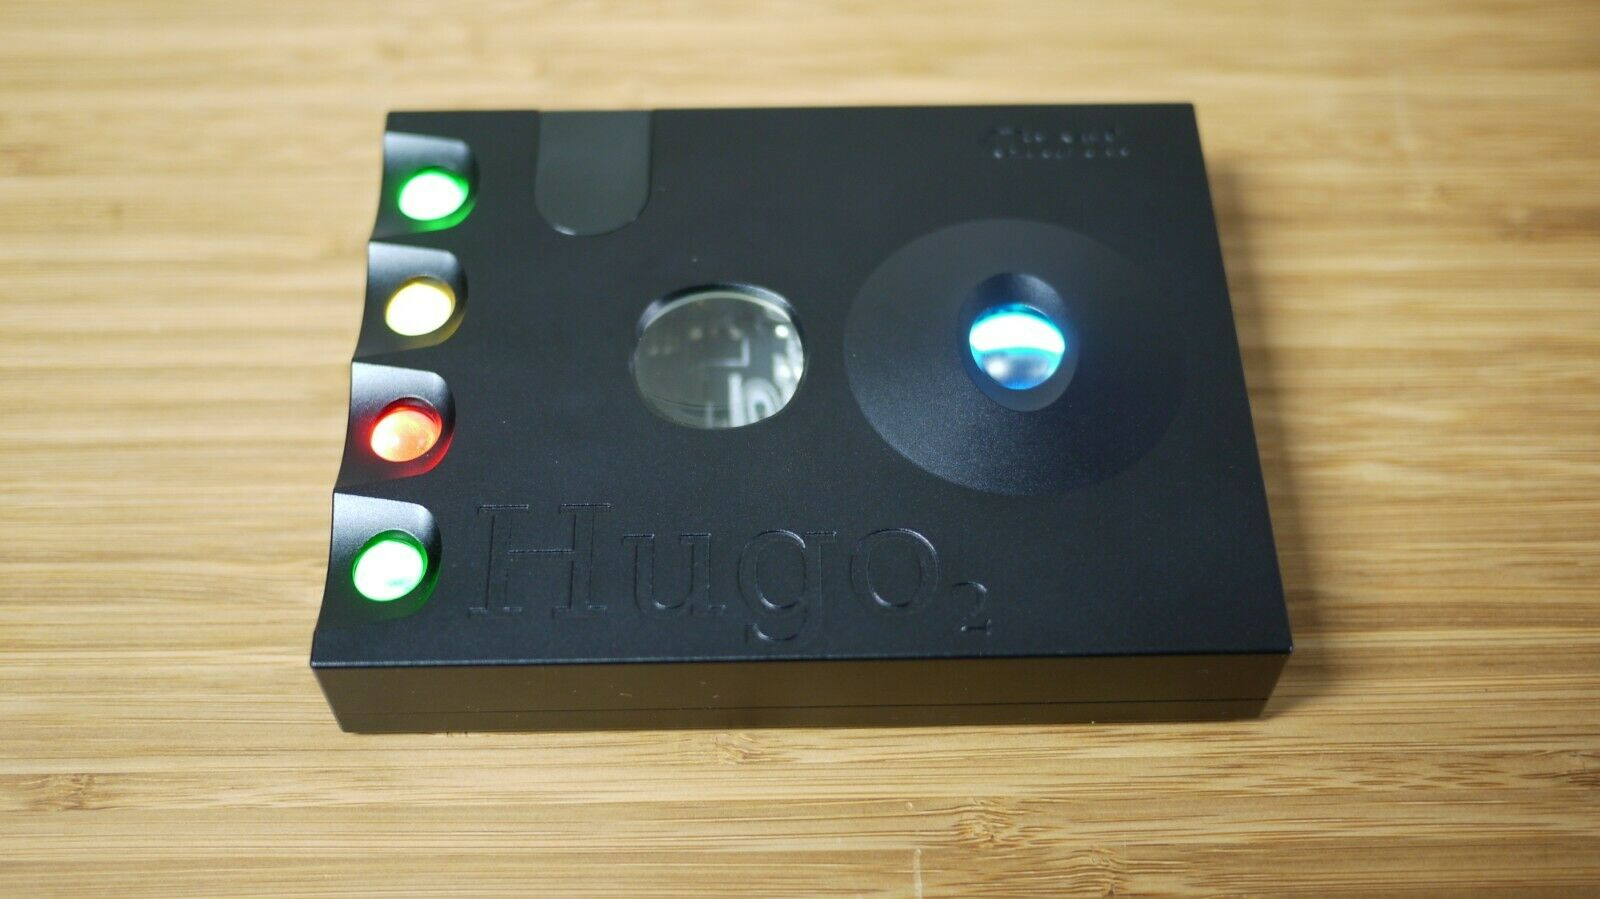 Picture of Chord Electronics Hugo 2 DAC